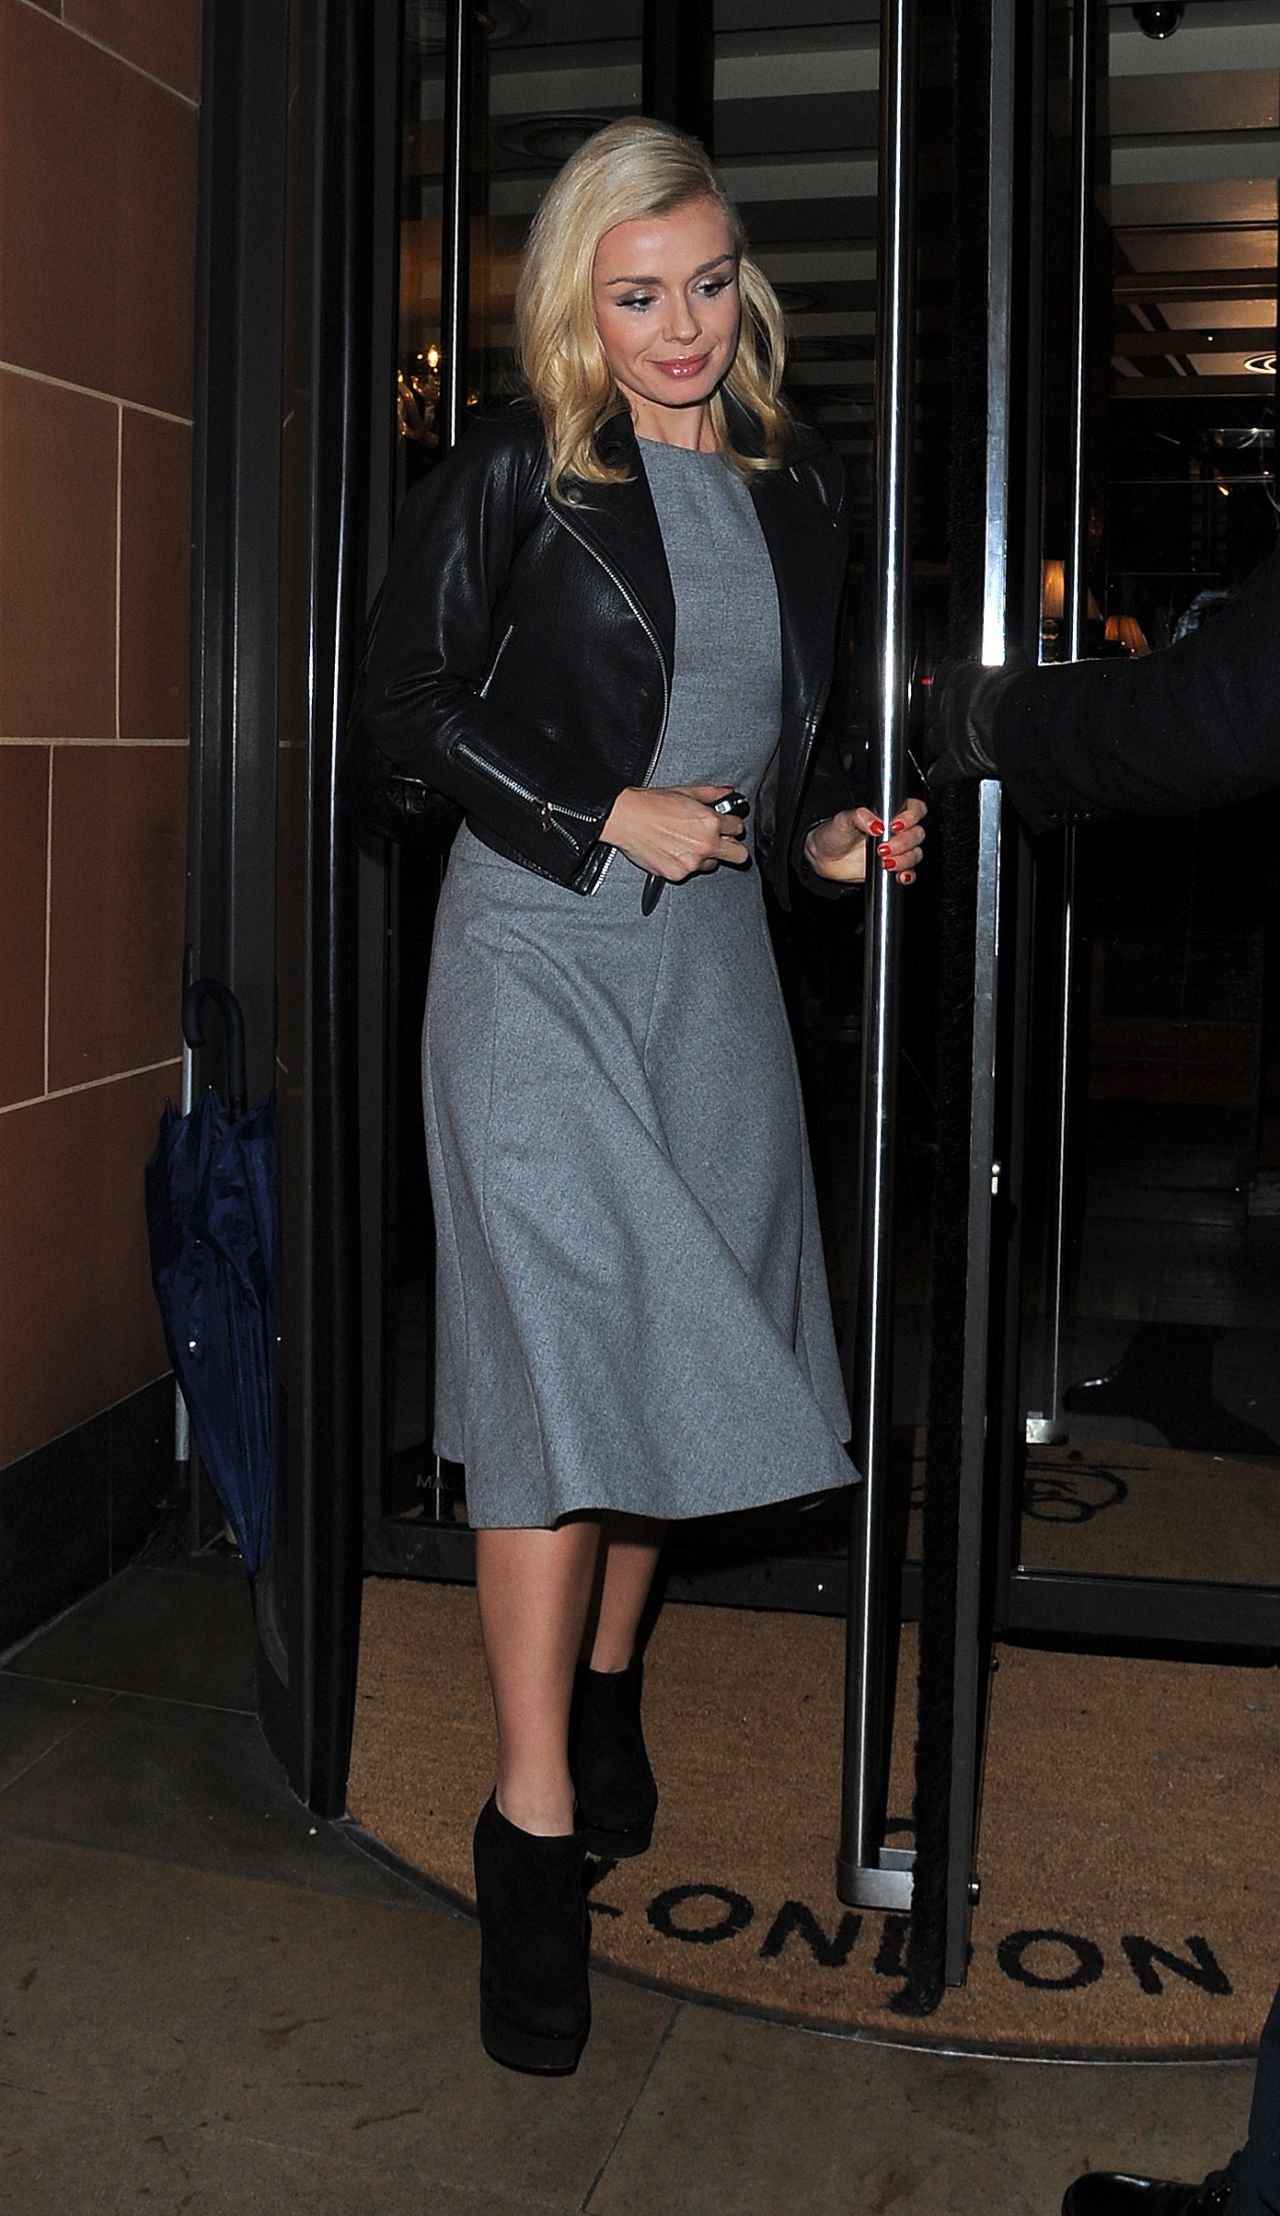 Katherine Jenkins Night Out Style - Leaving Cipriani Restaurant in Mayfair, London, Jan. 2014